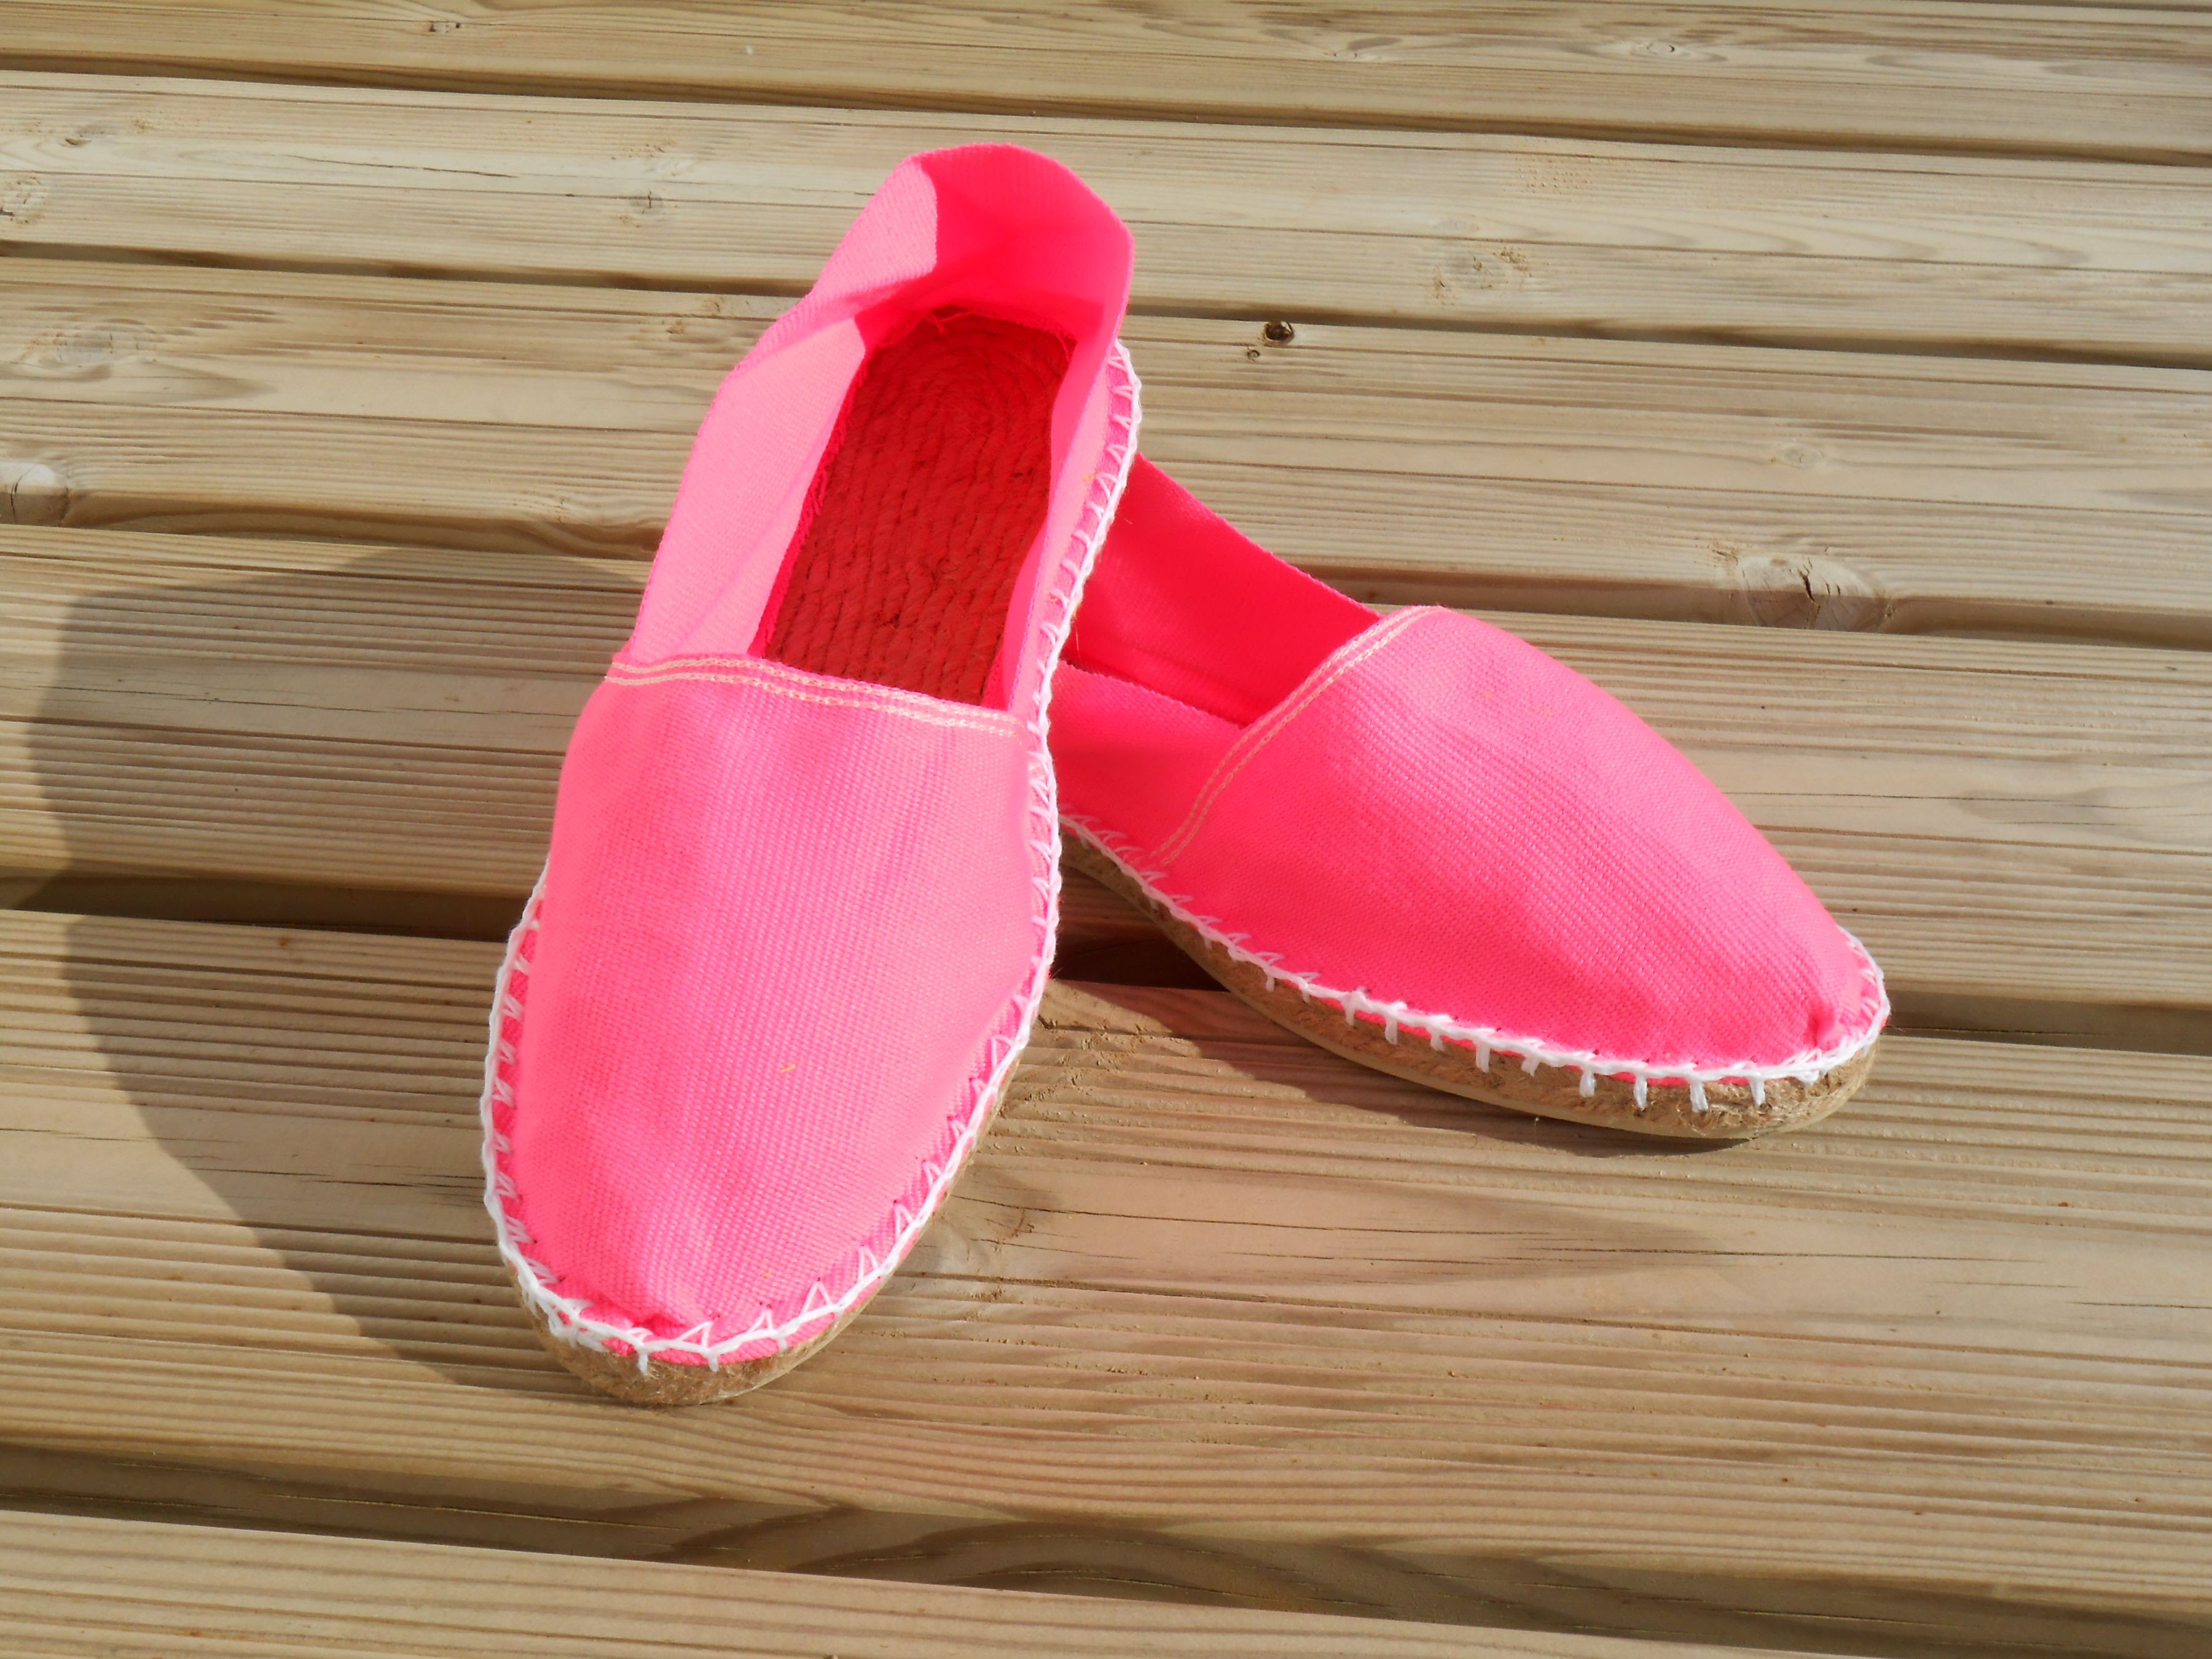 Espadrilles basques rose fluo taille 36